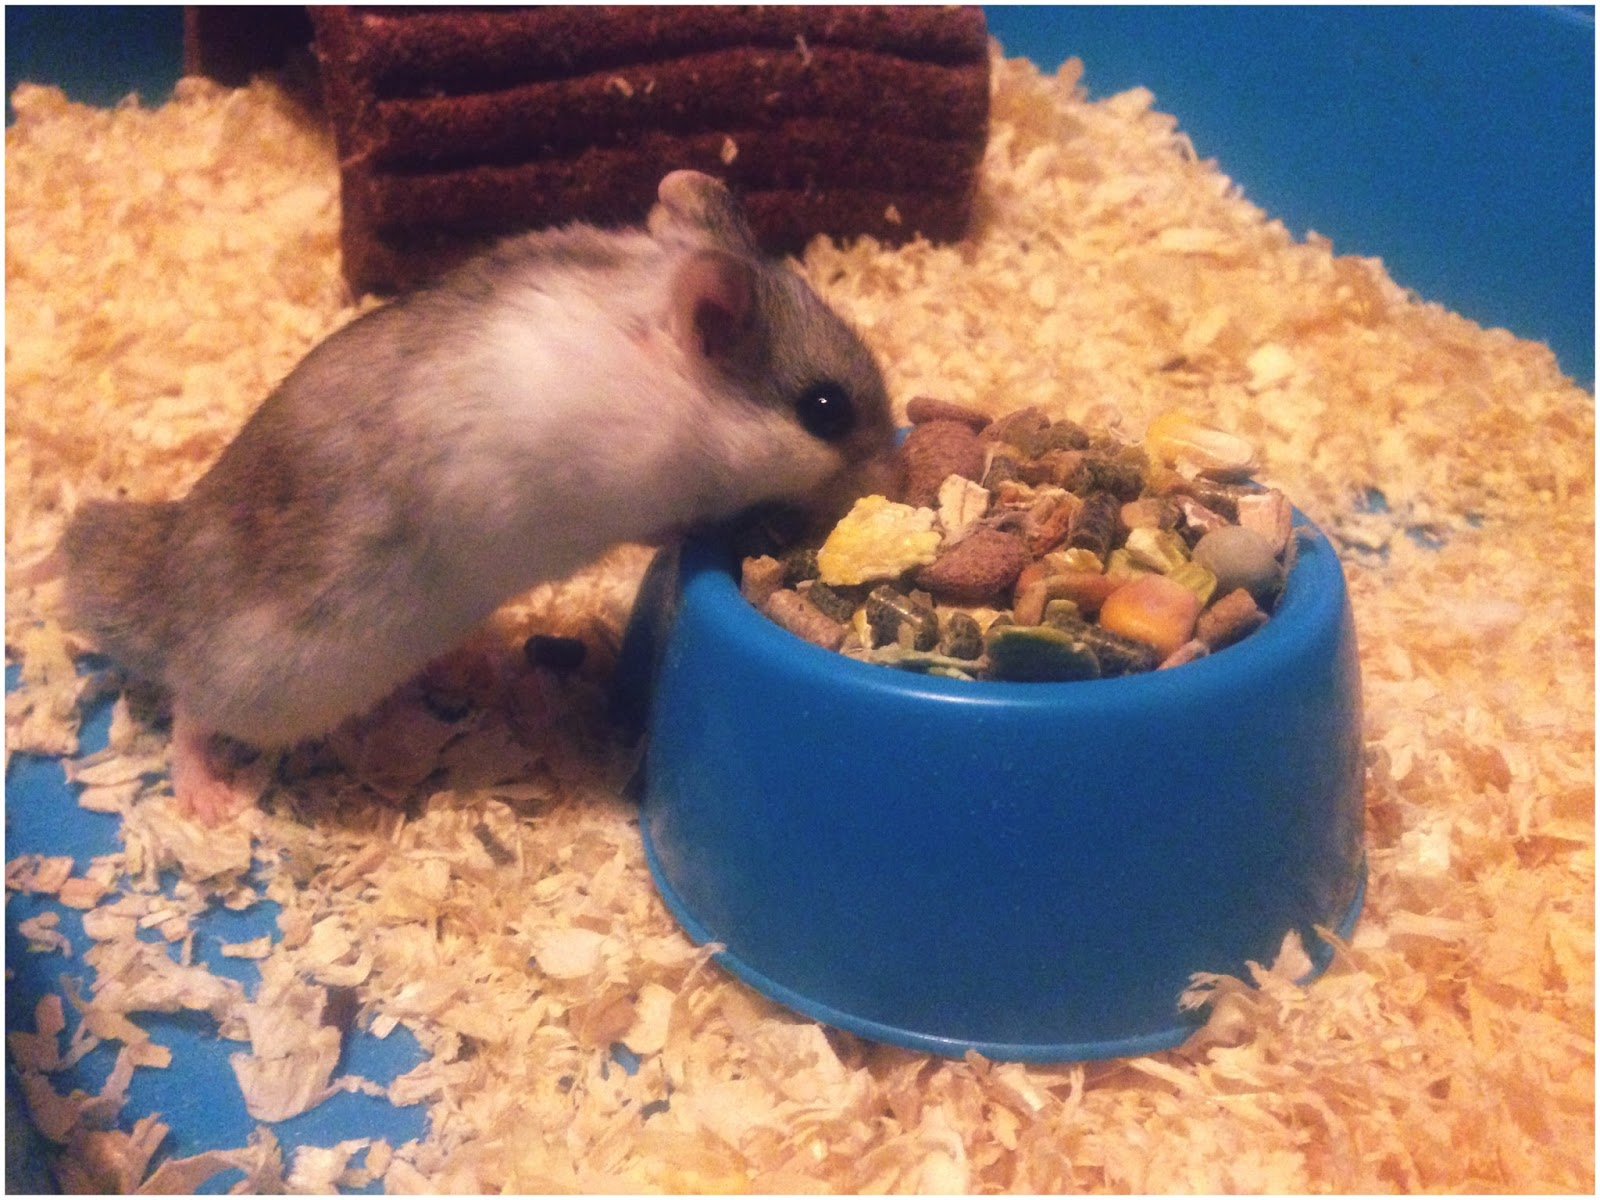 hamster, pet, food, eating, cheeks, rodent, parent blogger, photography, photo,